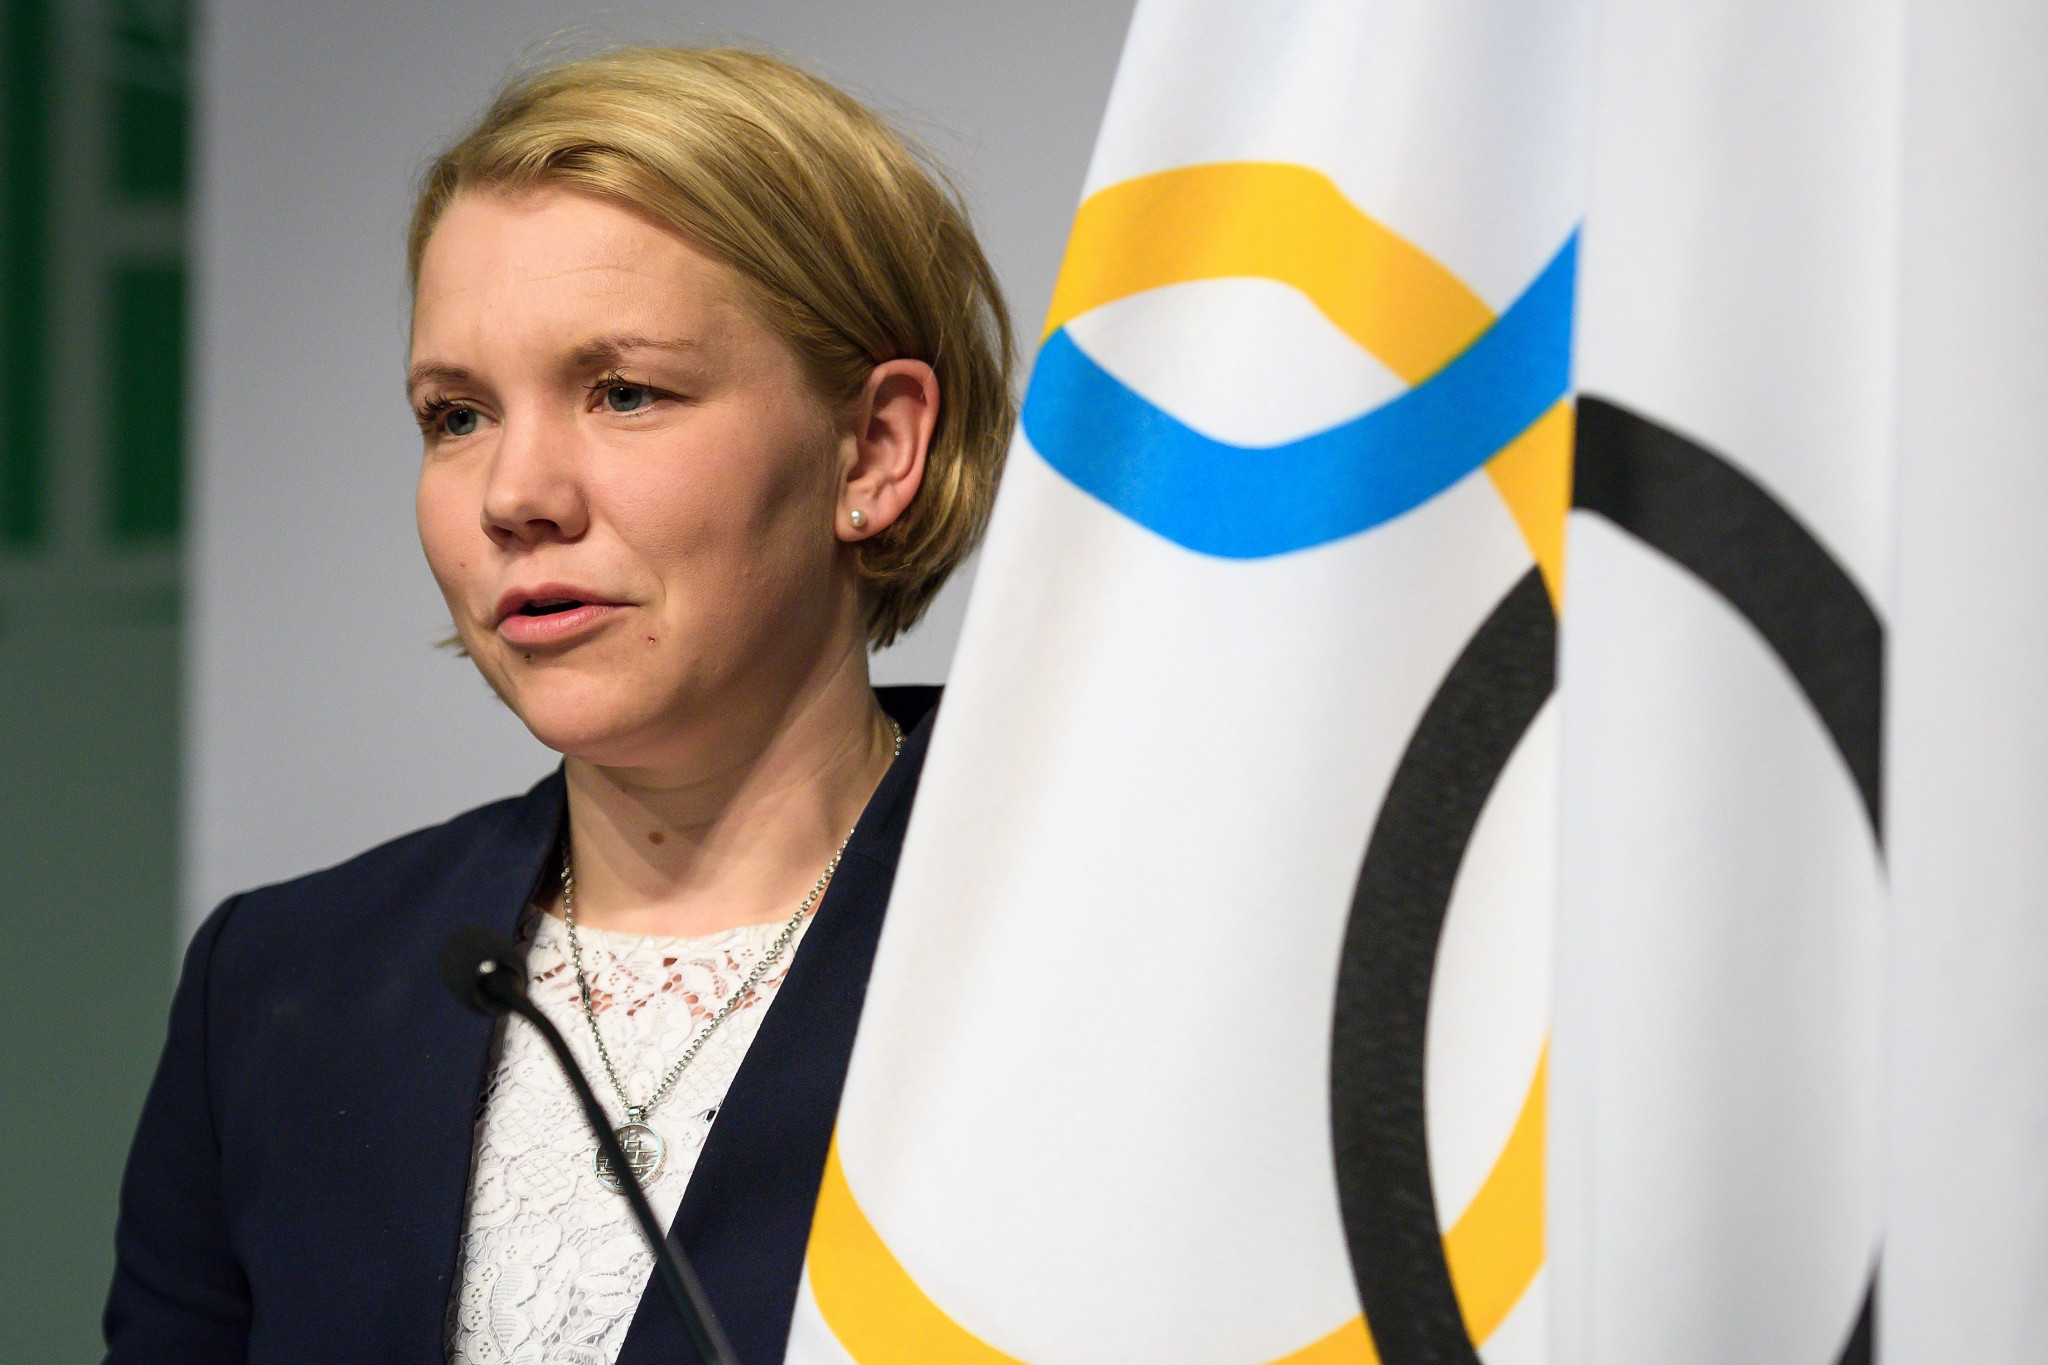 Emma Terho, as head of the IOC Athletes' Commission, sits on the Executive Board ©Getty Images